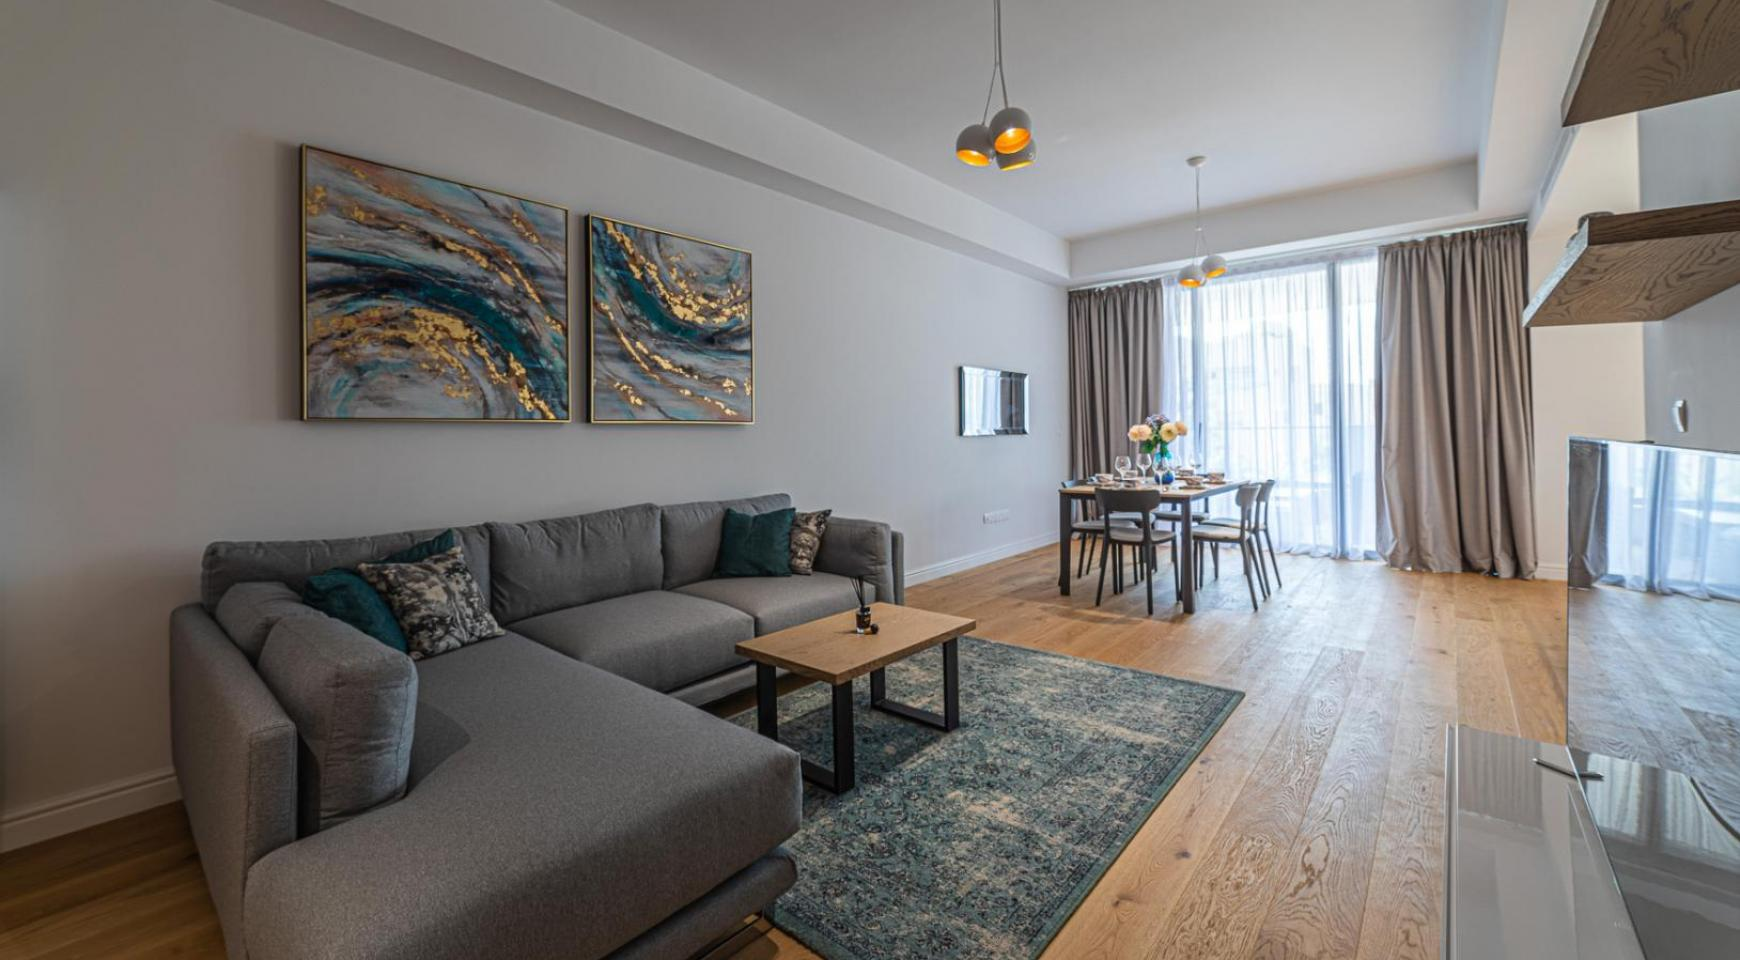 Hortensia Residence, Apt. 103. 3 Bedroom Apartment within a New Complex near the Sea  - 53